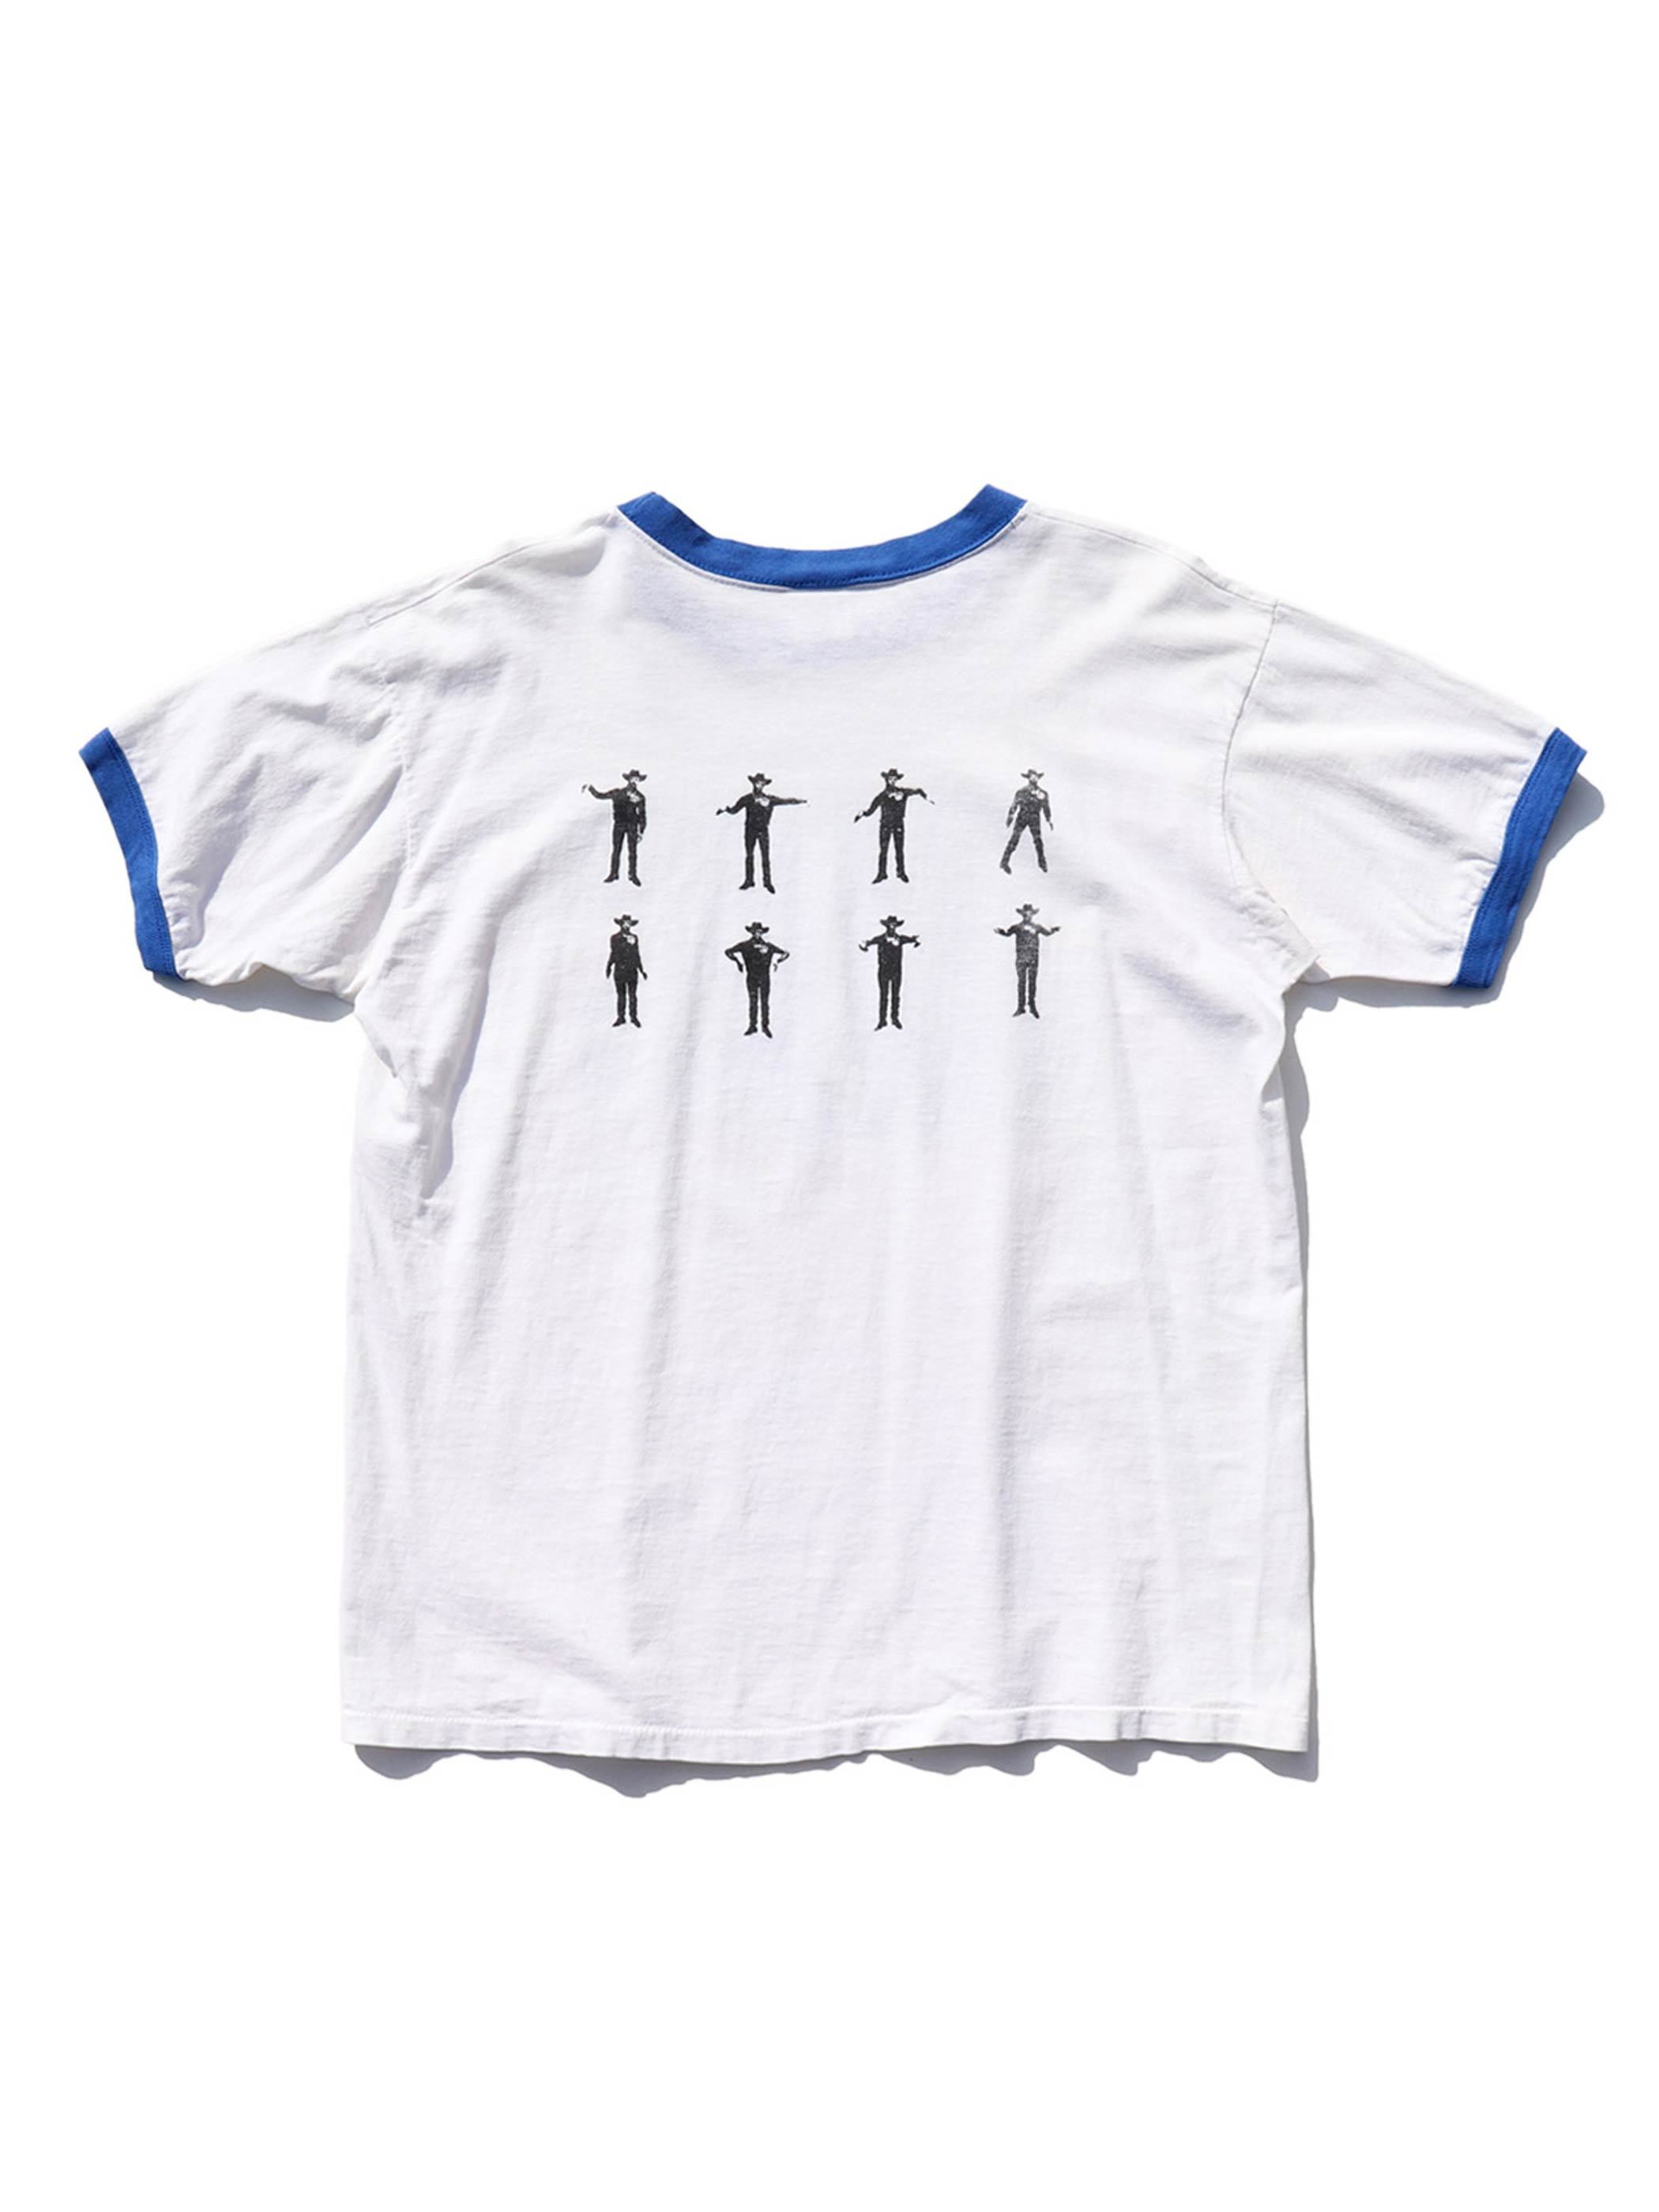 """90's BECK """"WHERE IT'S AT"""" USA製 リンガーTシャツ [L]"""